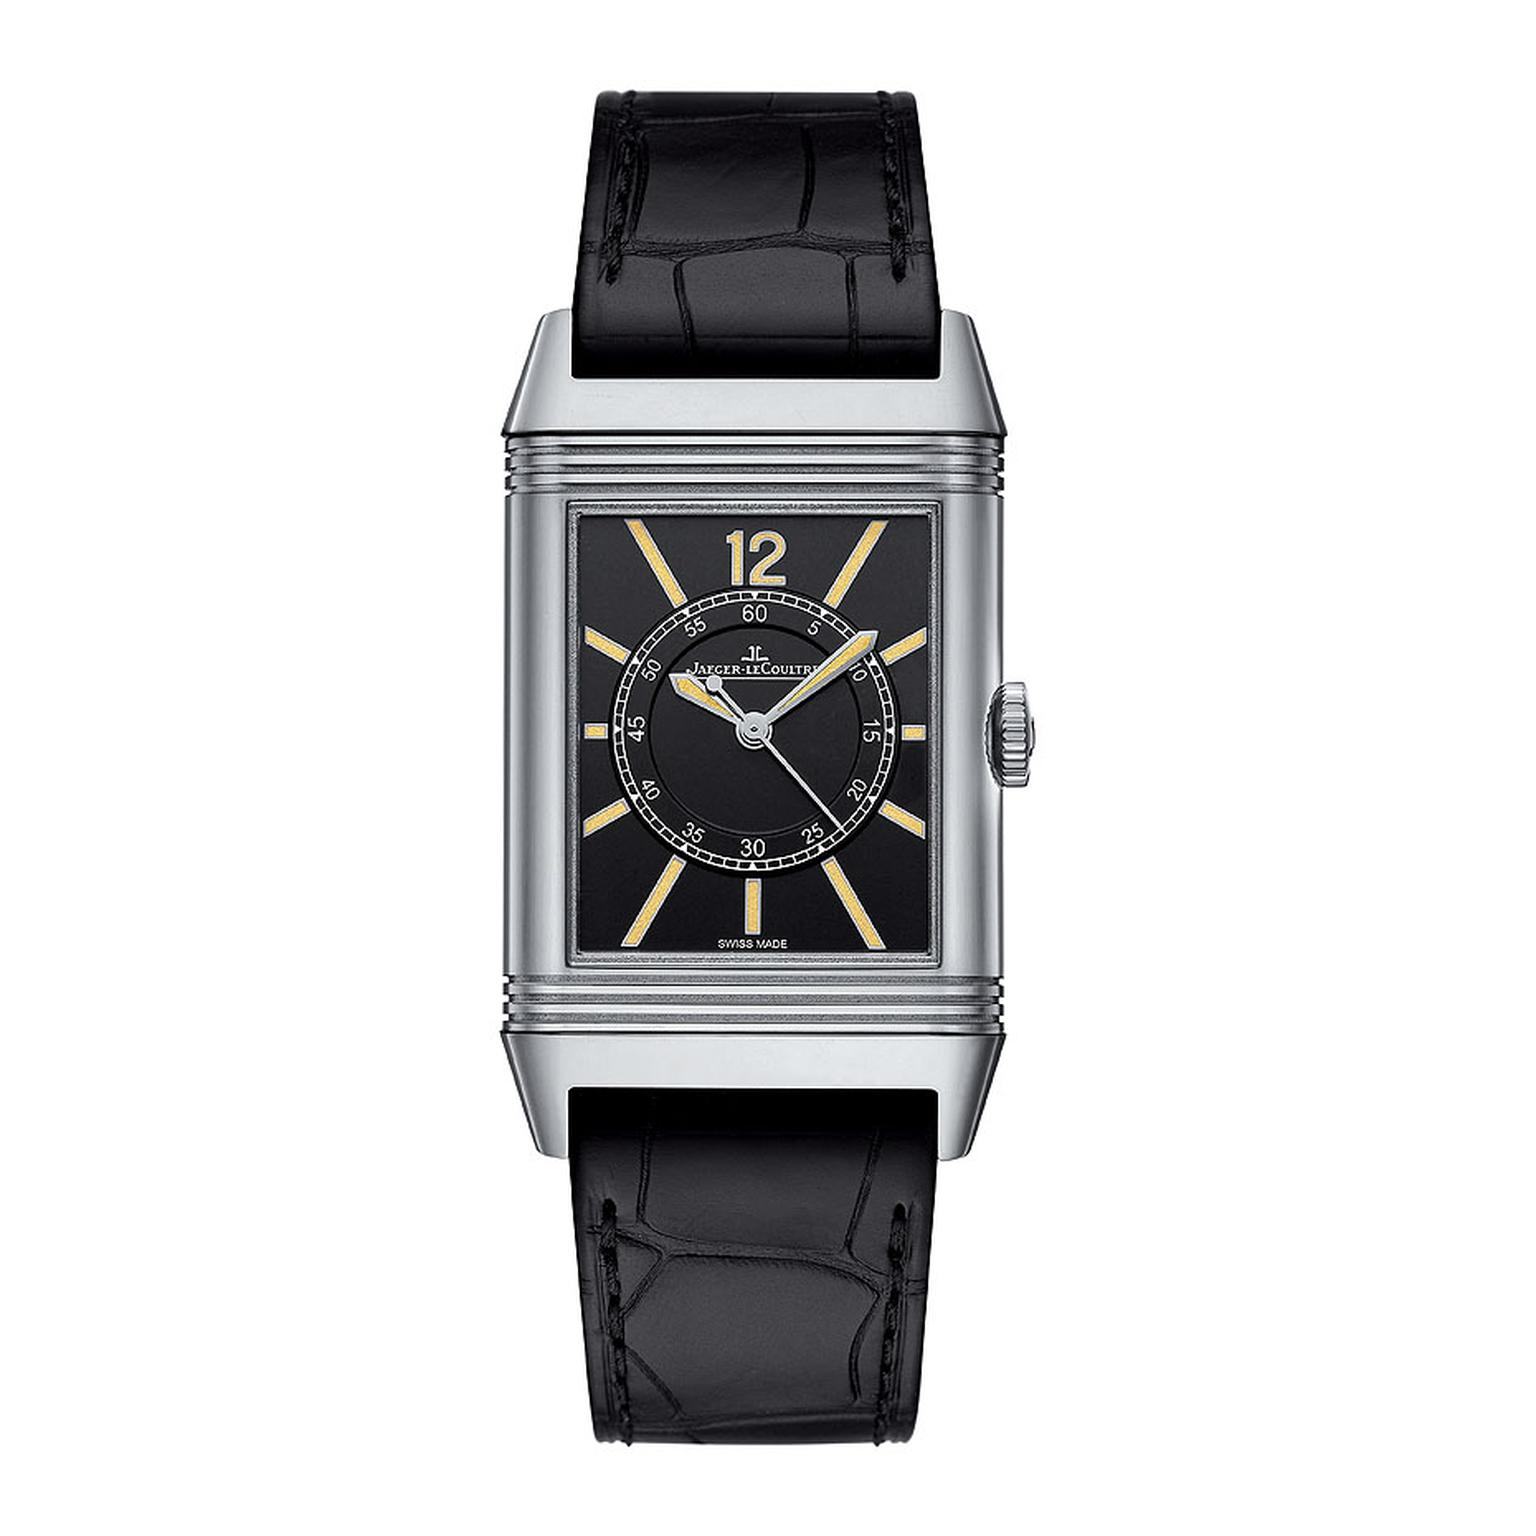 Jaeger-LeCoultre Grande Reverso 1931 Seconde Centrale watch.jpg